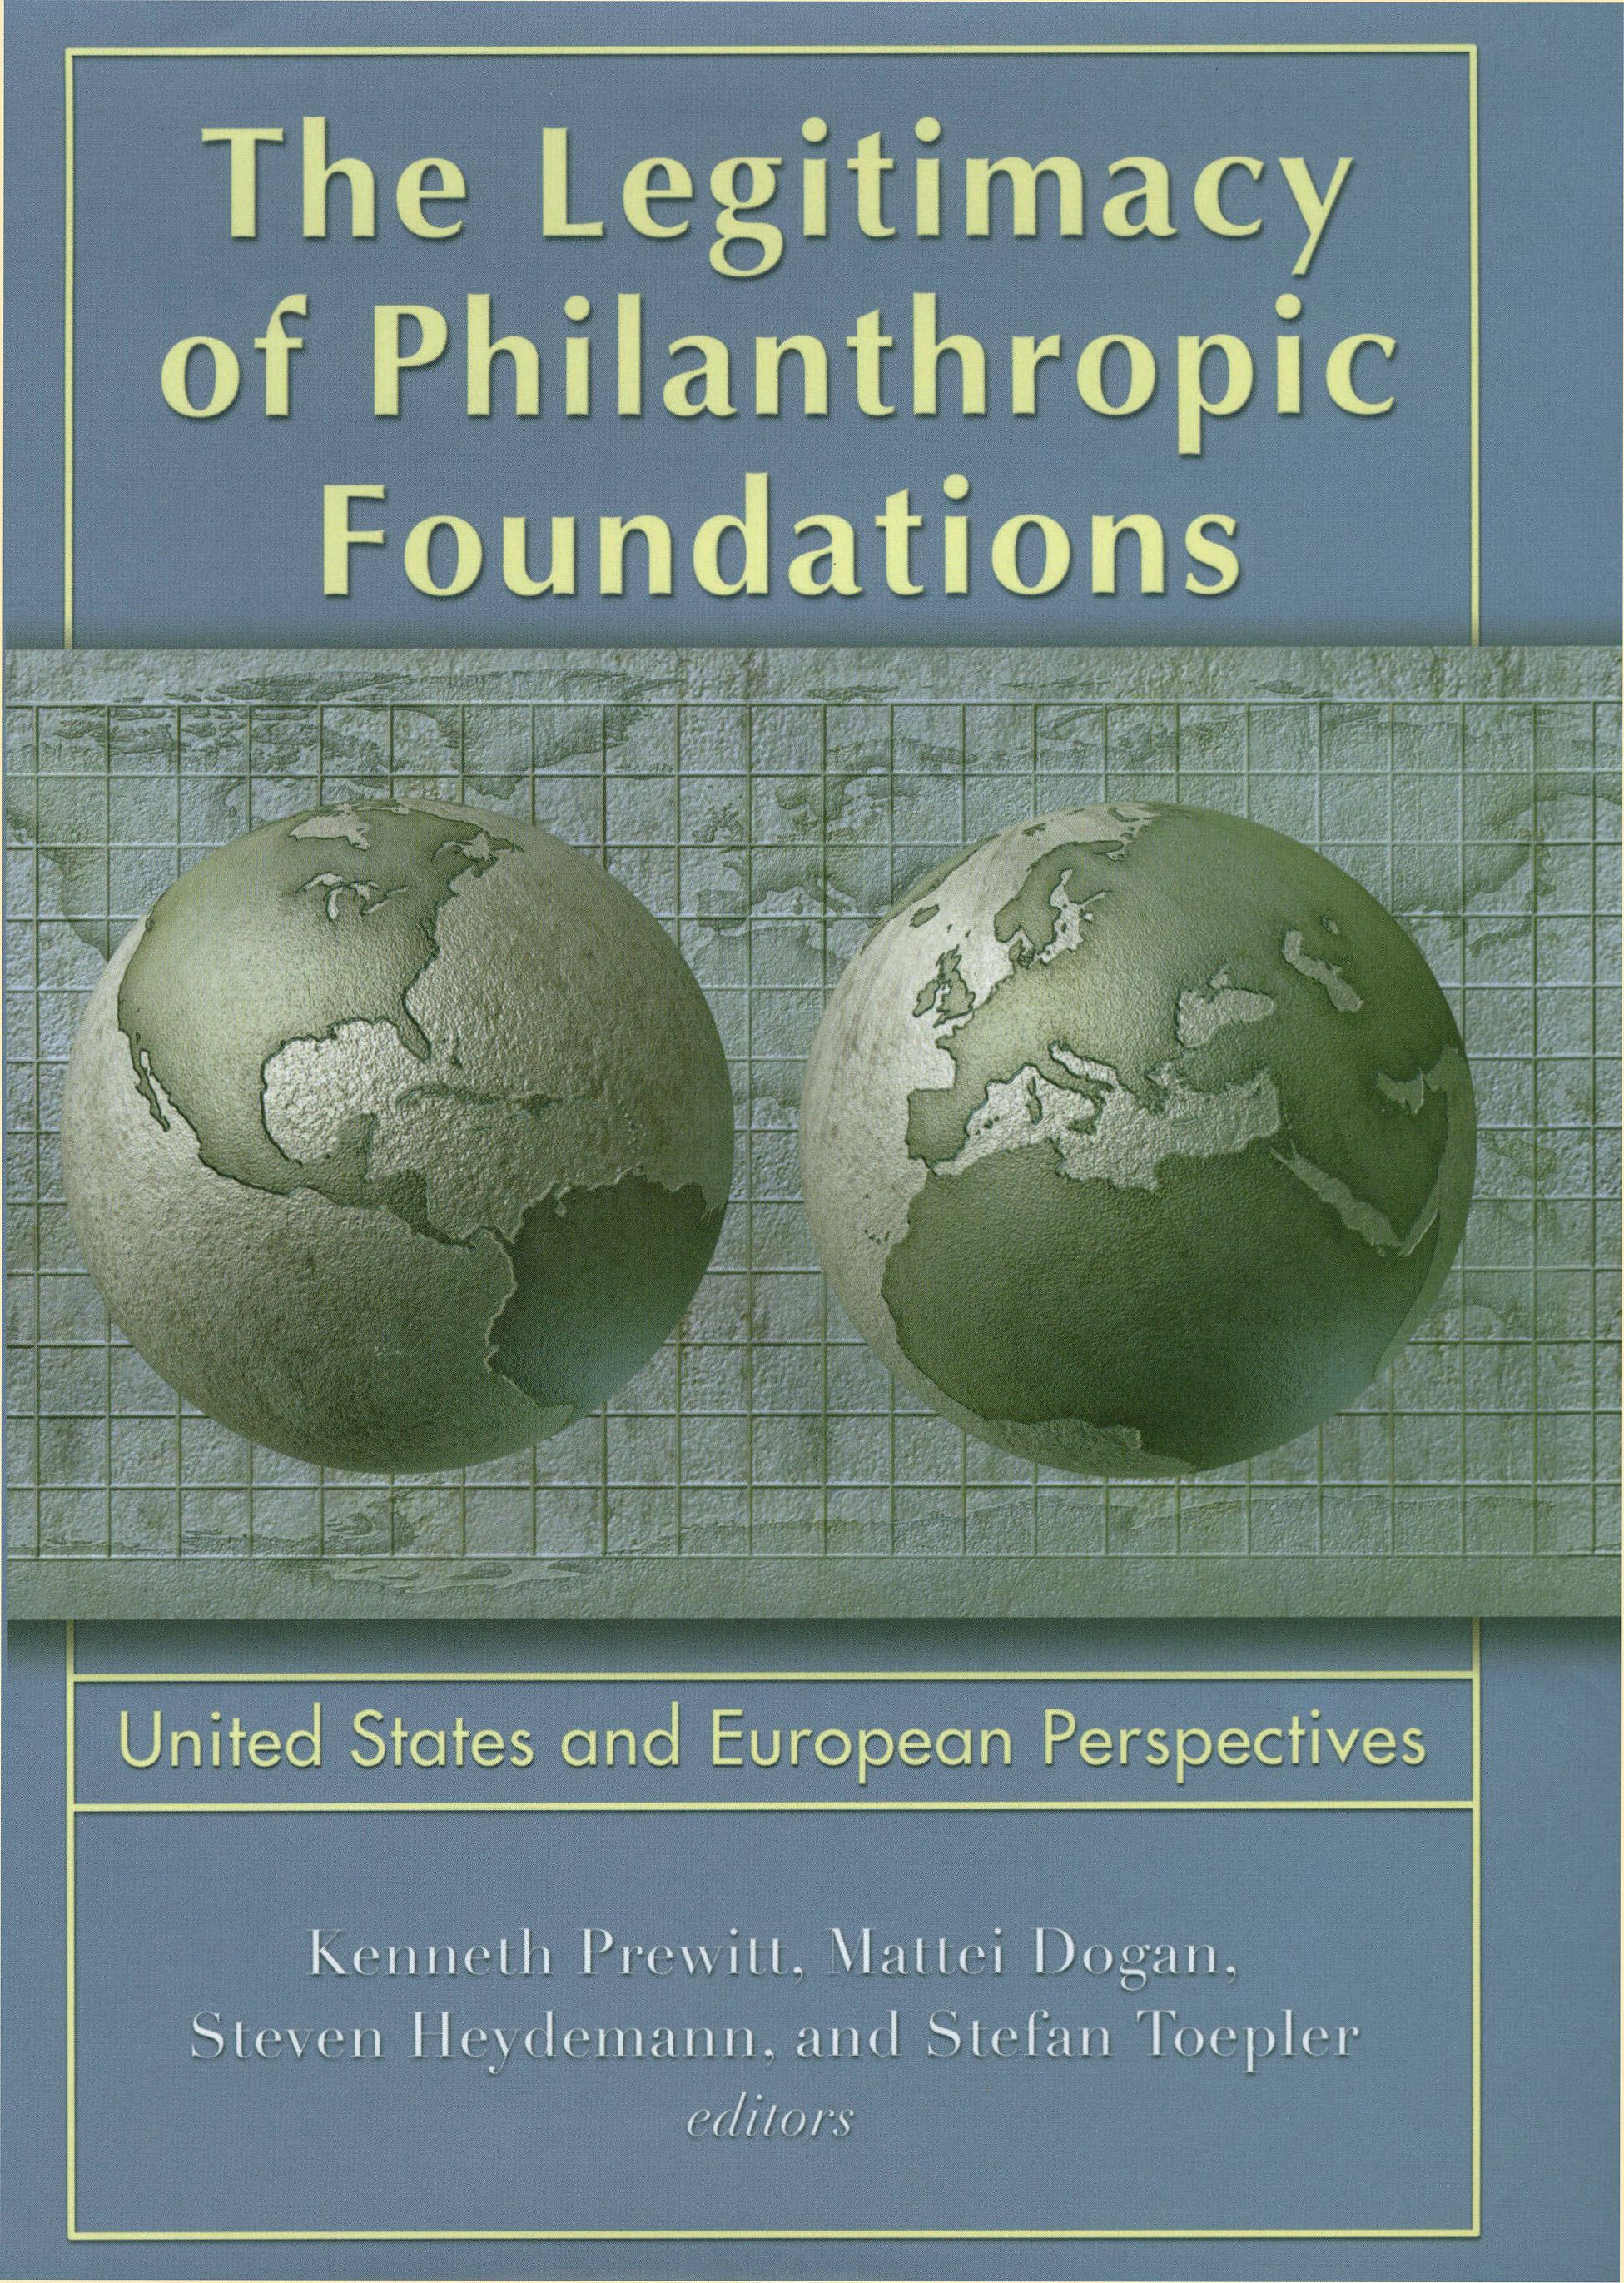 The Legitimacy of Philanthropic Foundations